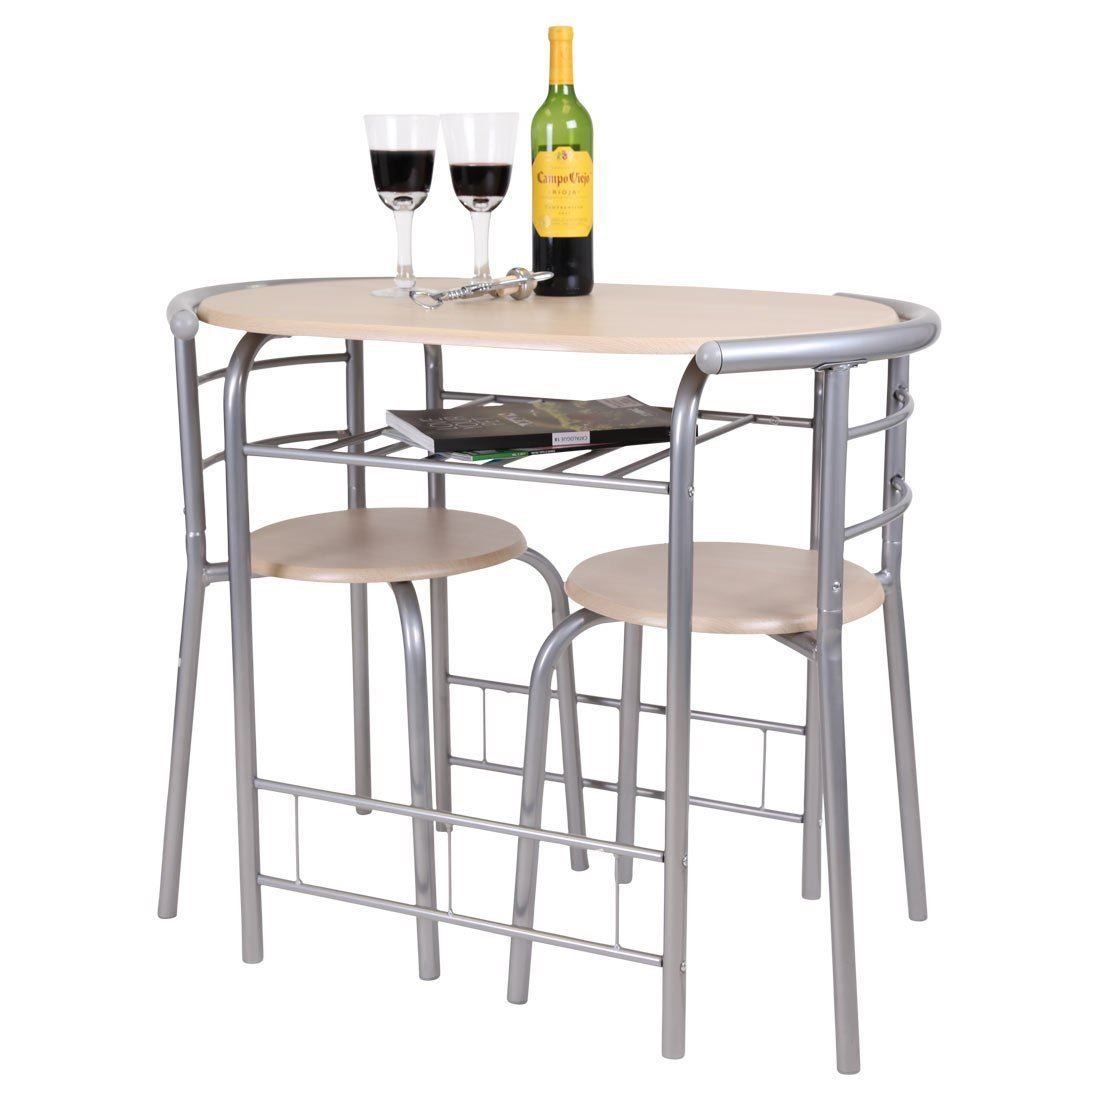 White Bar Table And Stools: Breakfast Bar Table 2 Chairs Stools Set Dining Room